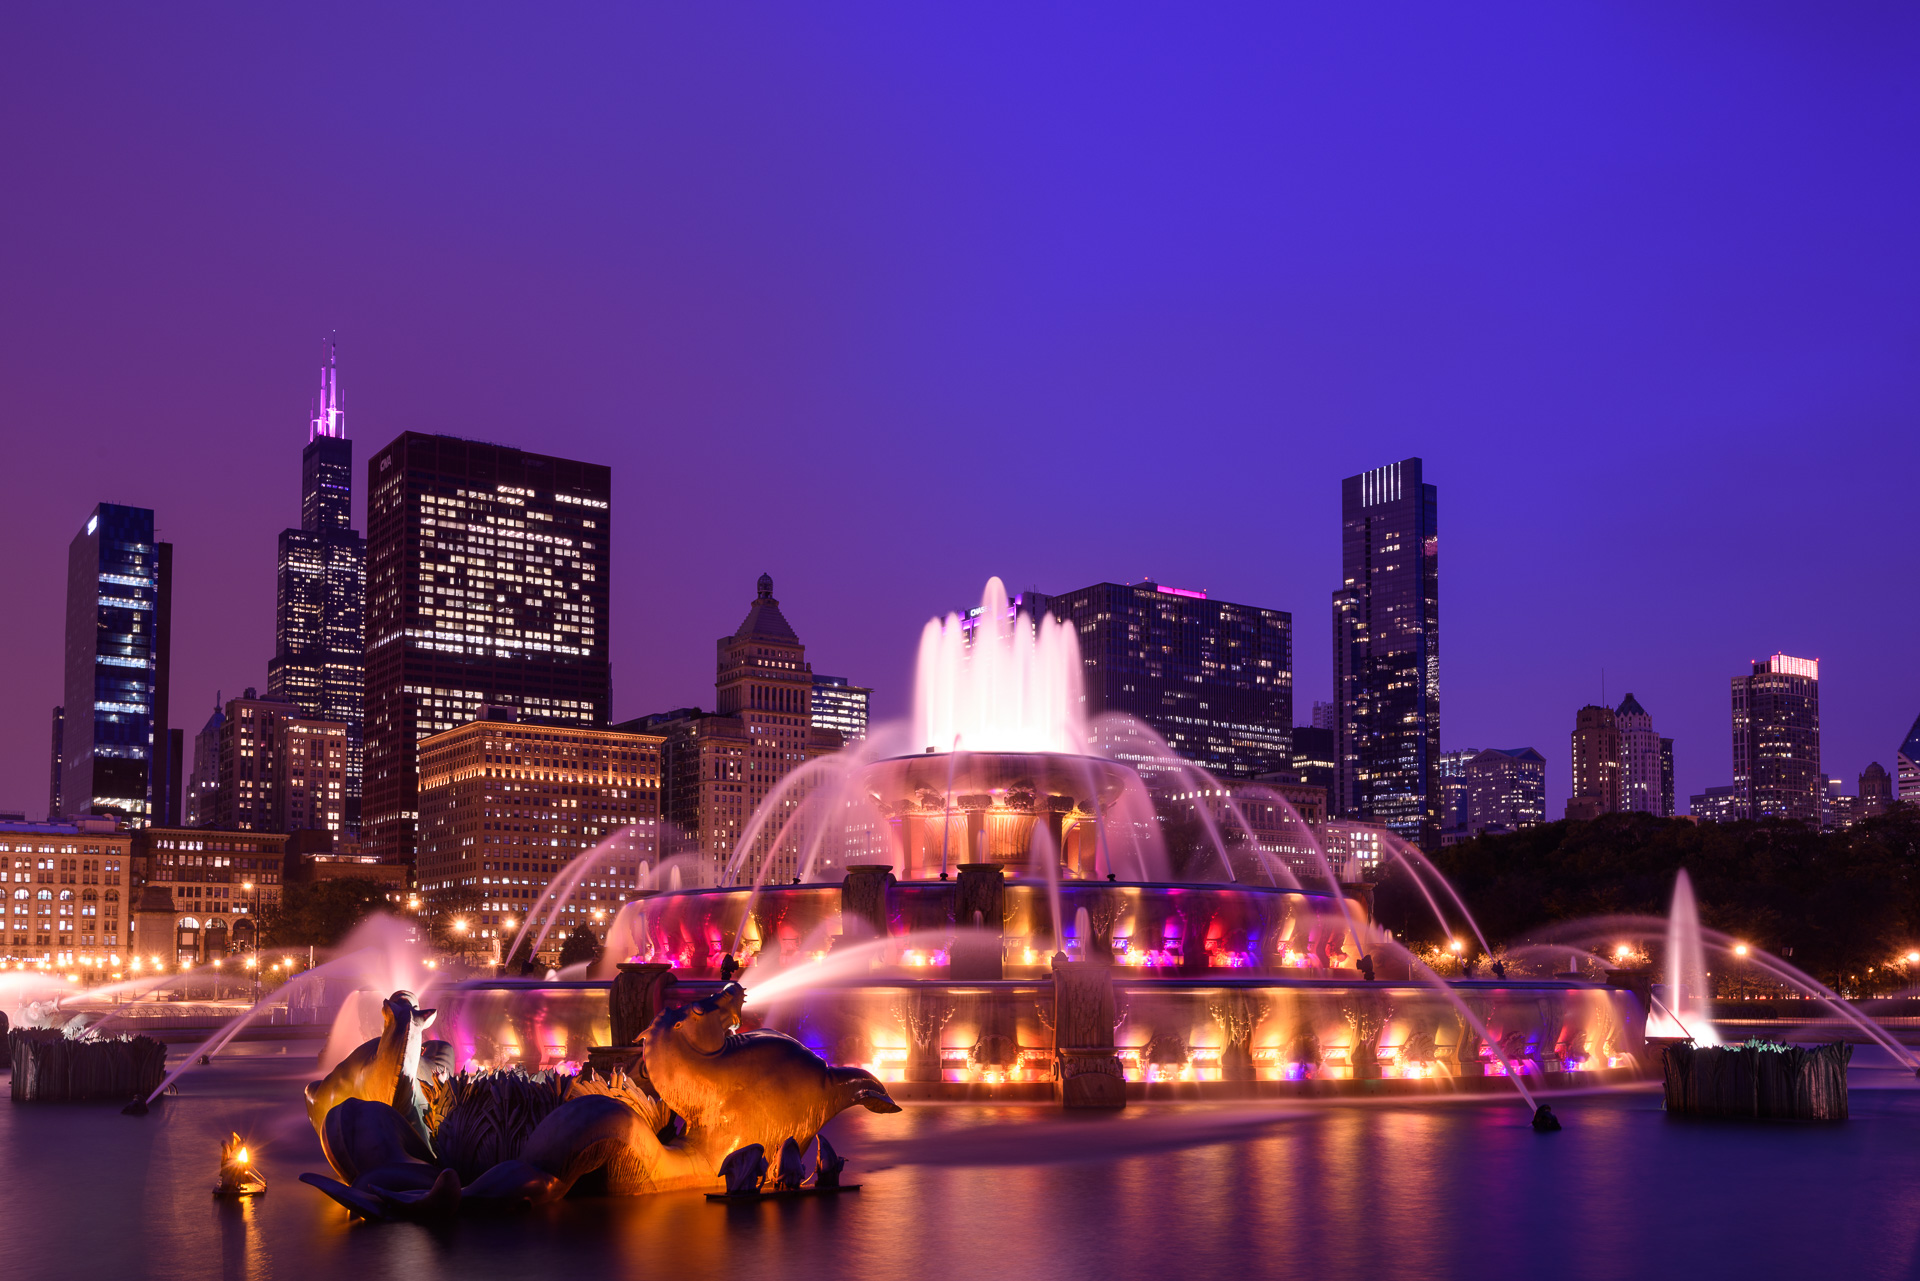 Buckingham Fountain is just one of the fabulous locations you'll photograph on our Chicago: Art & Architecture instructional photo tour August 19-23, 2015.